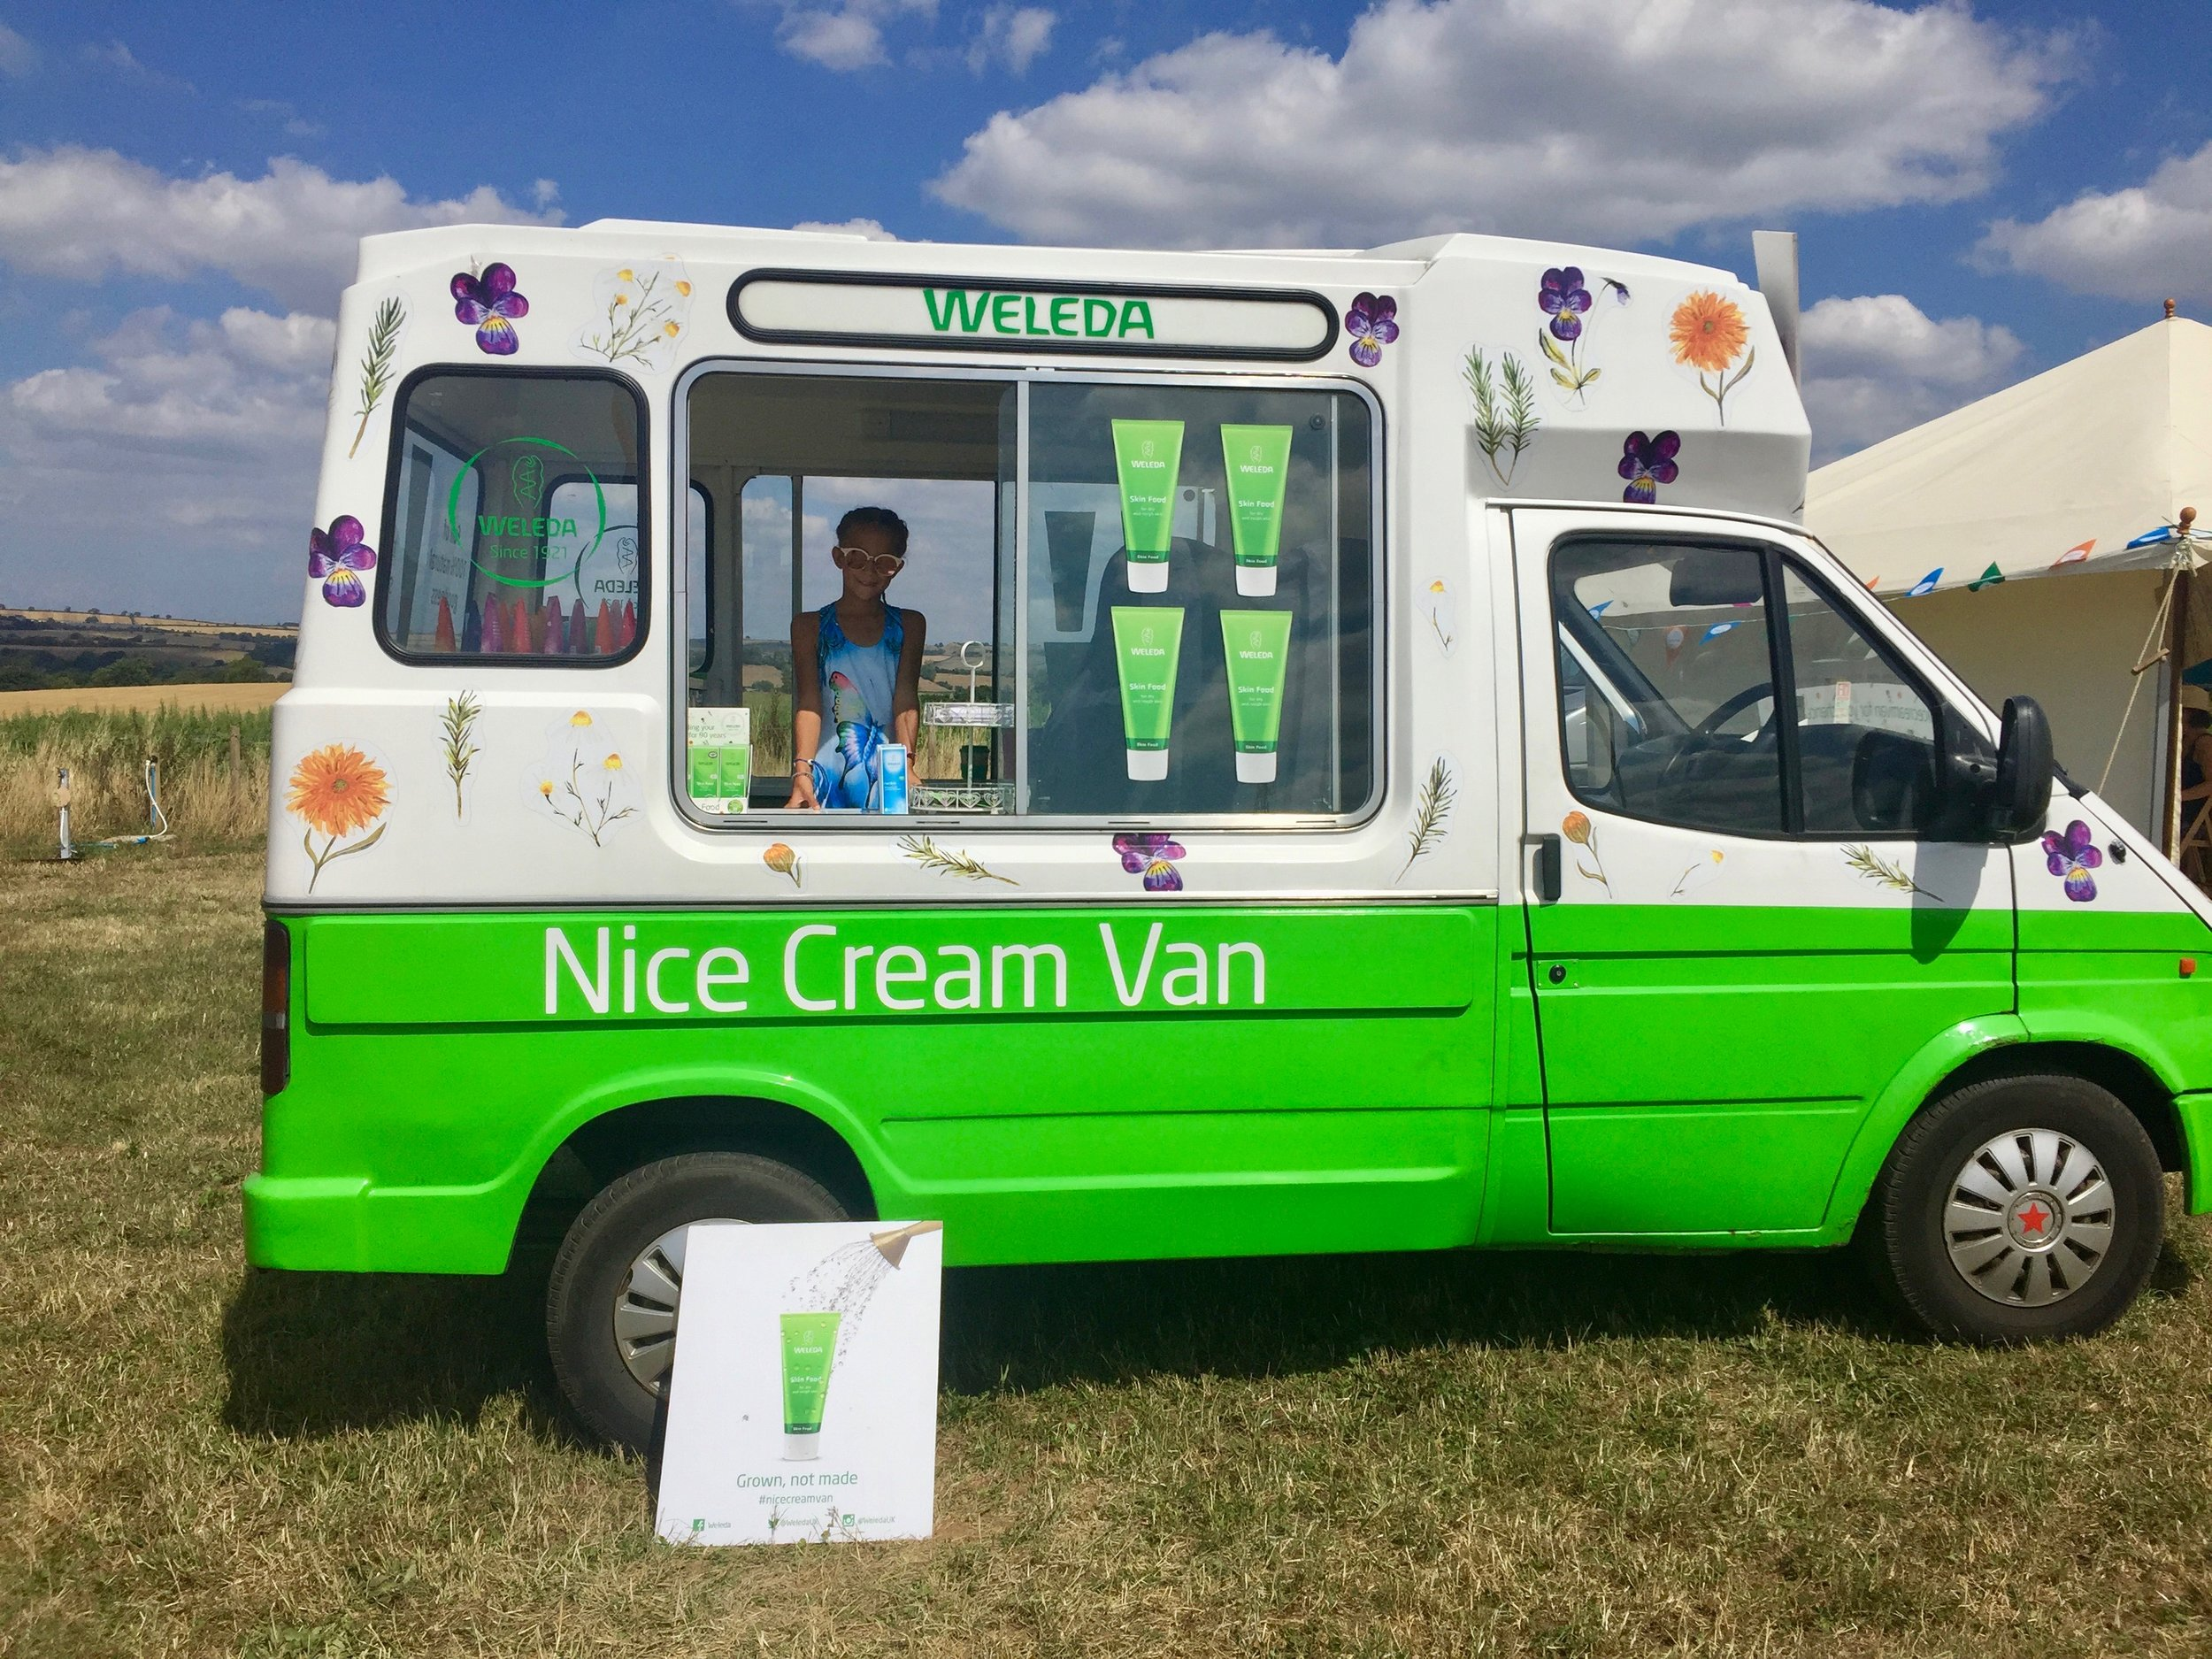 Weleda Nice Cream Van Valleyfest.jpg